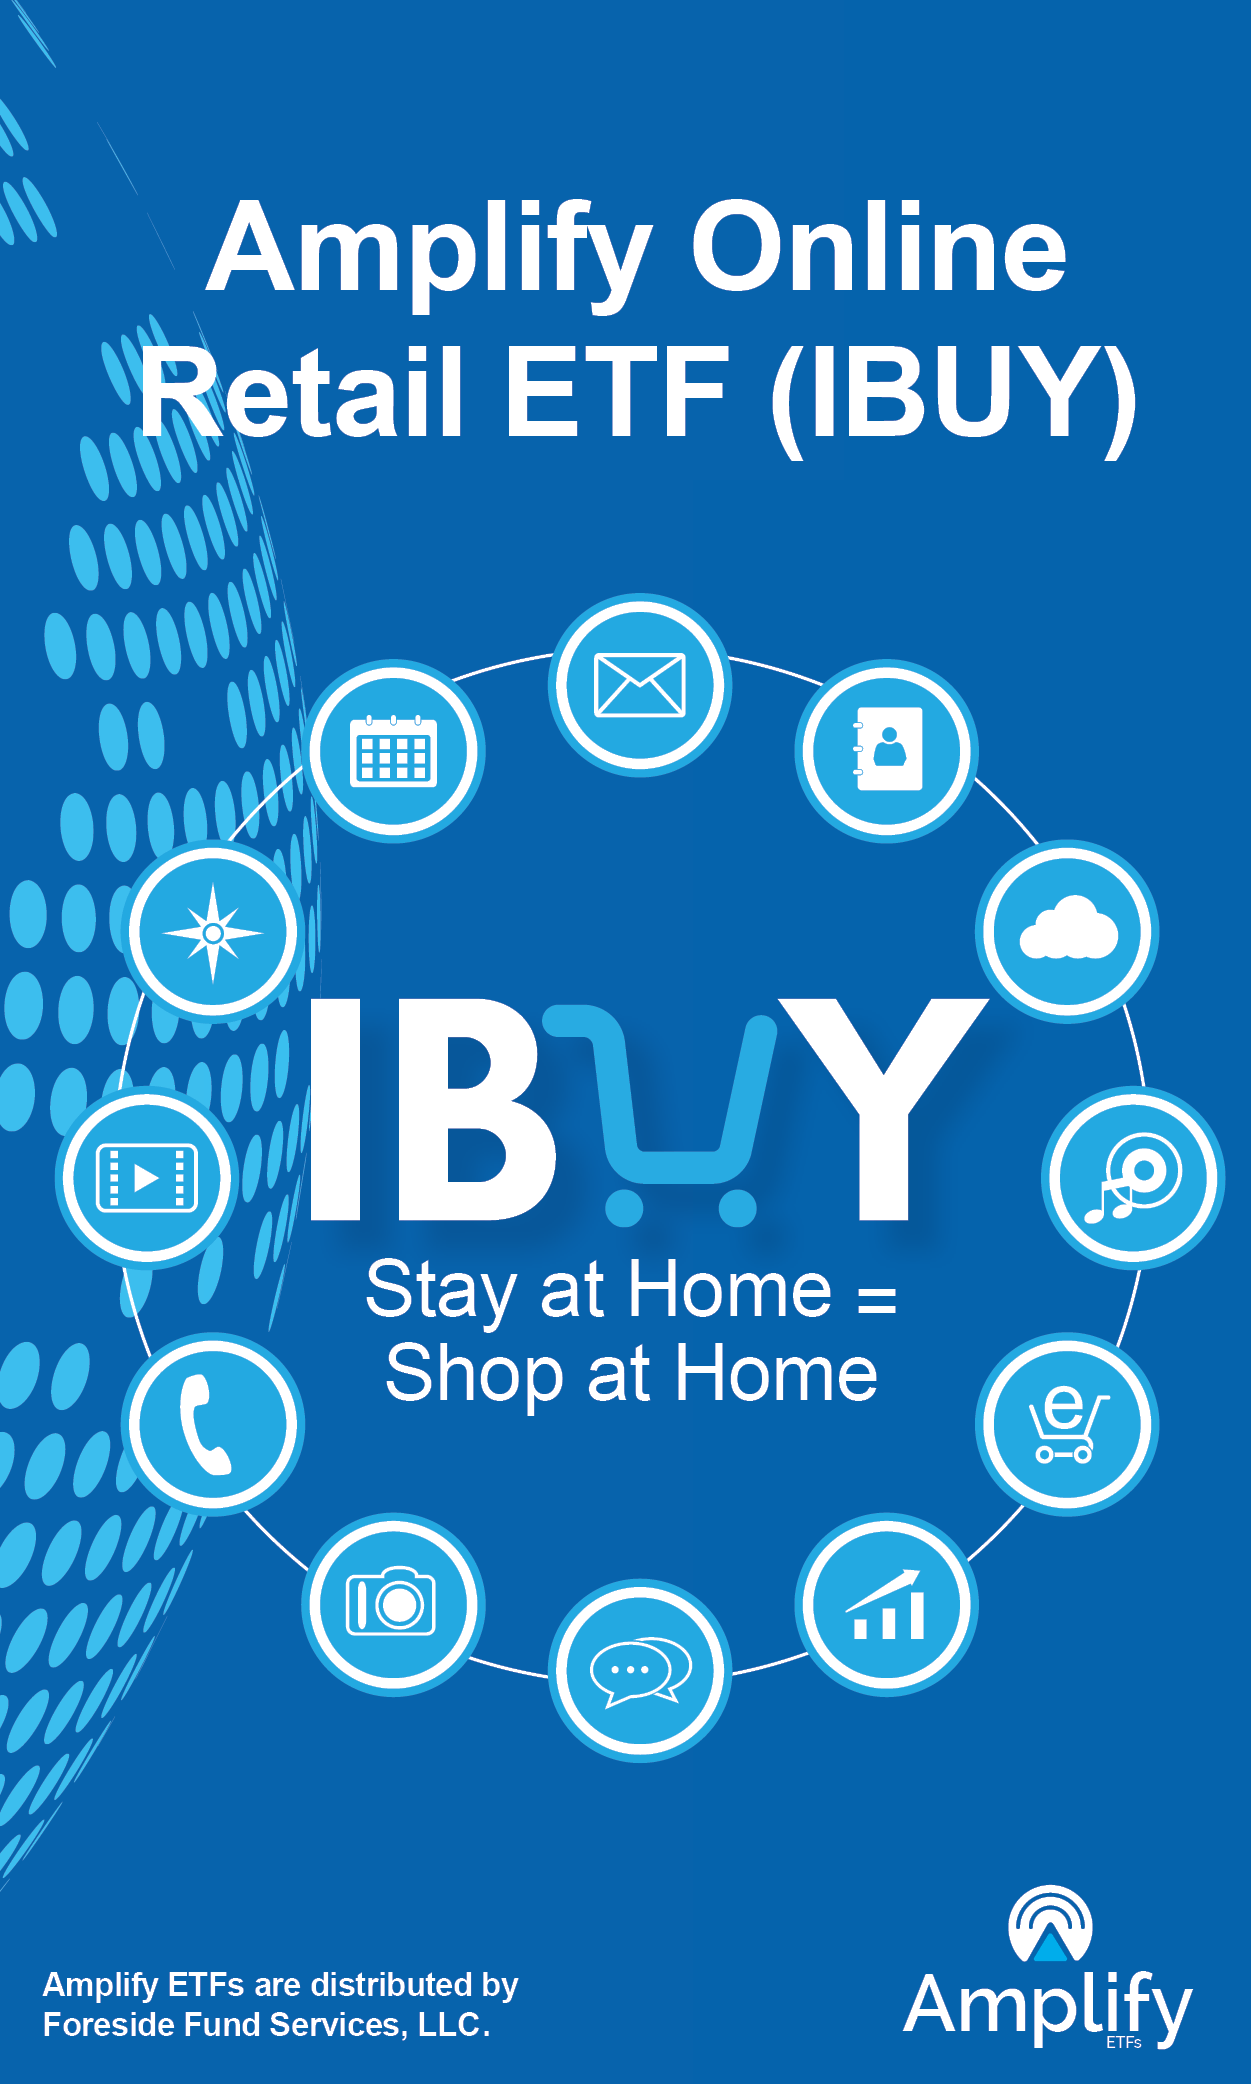 IBUY Stay at Home = Shop at Home